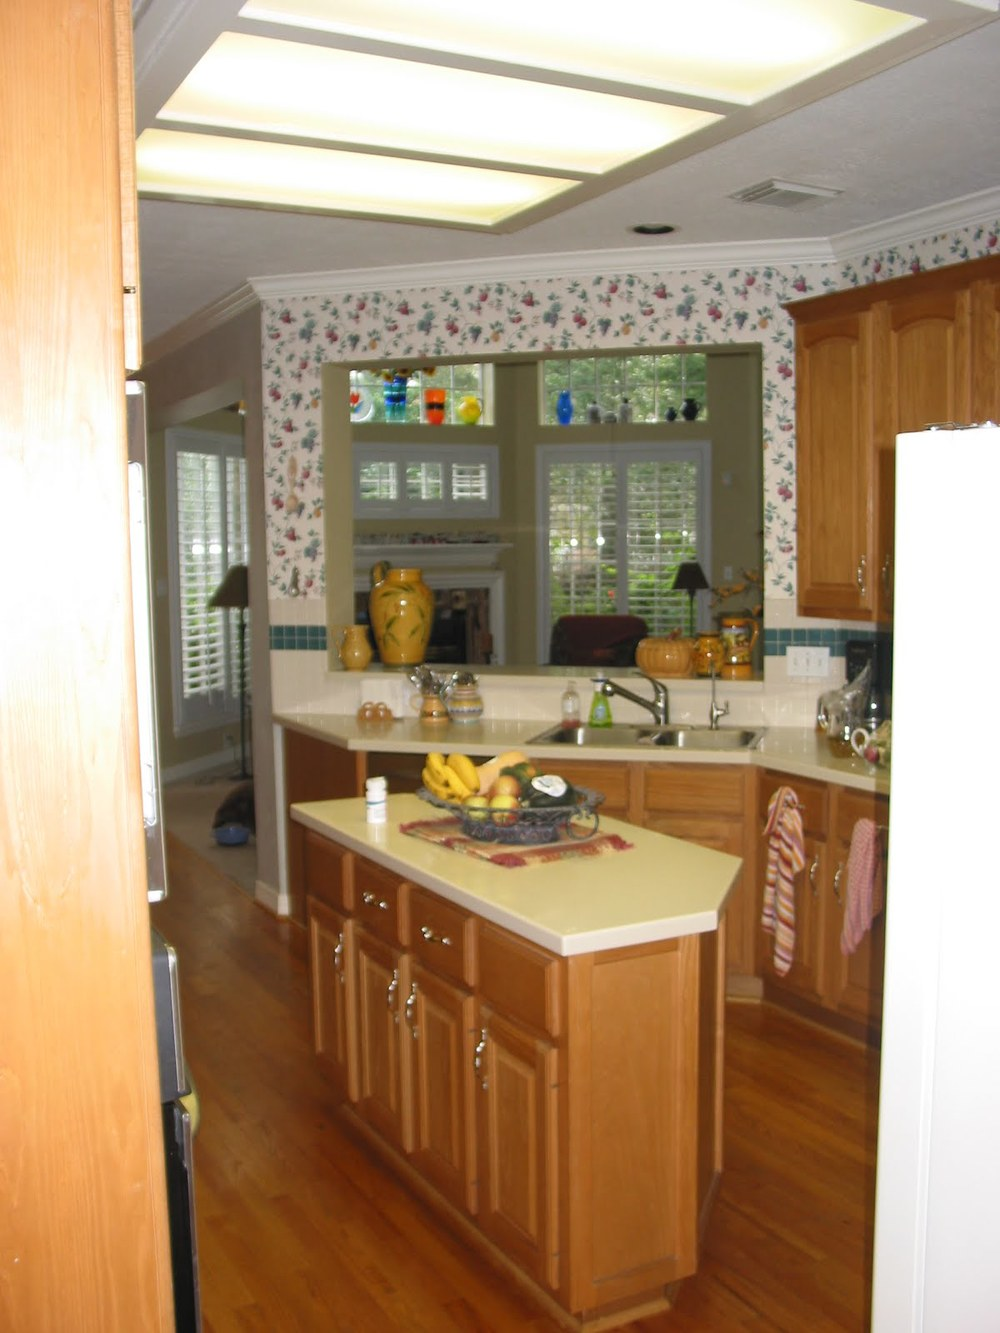 An Oddly Shaped Kitchen Island Why It 39 S One Of My